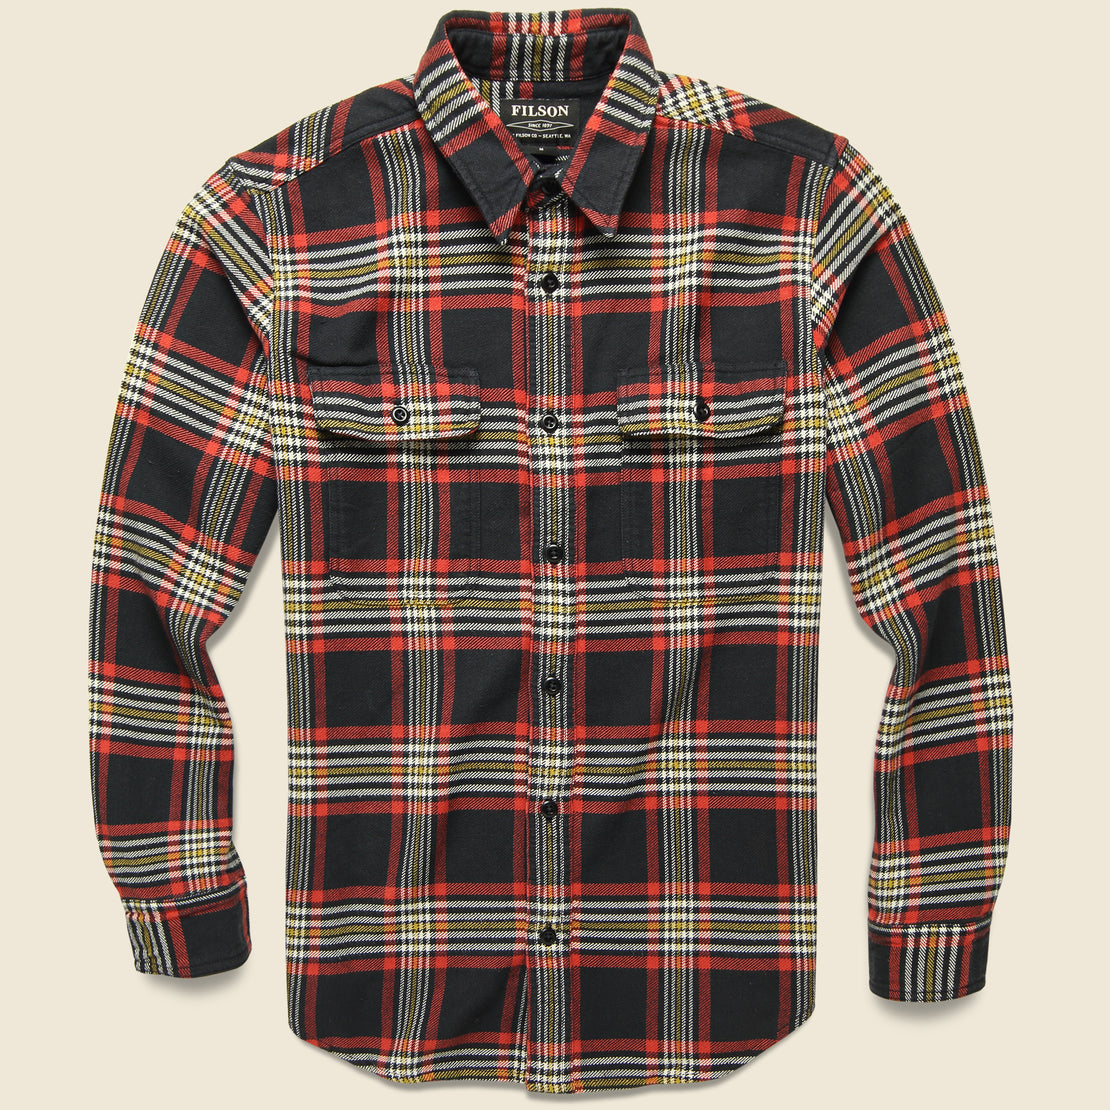 Filson Vintage Flannel Workshirt - Black/Red/Gold